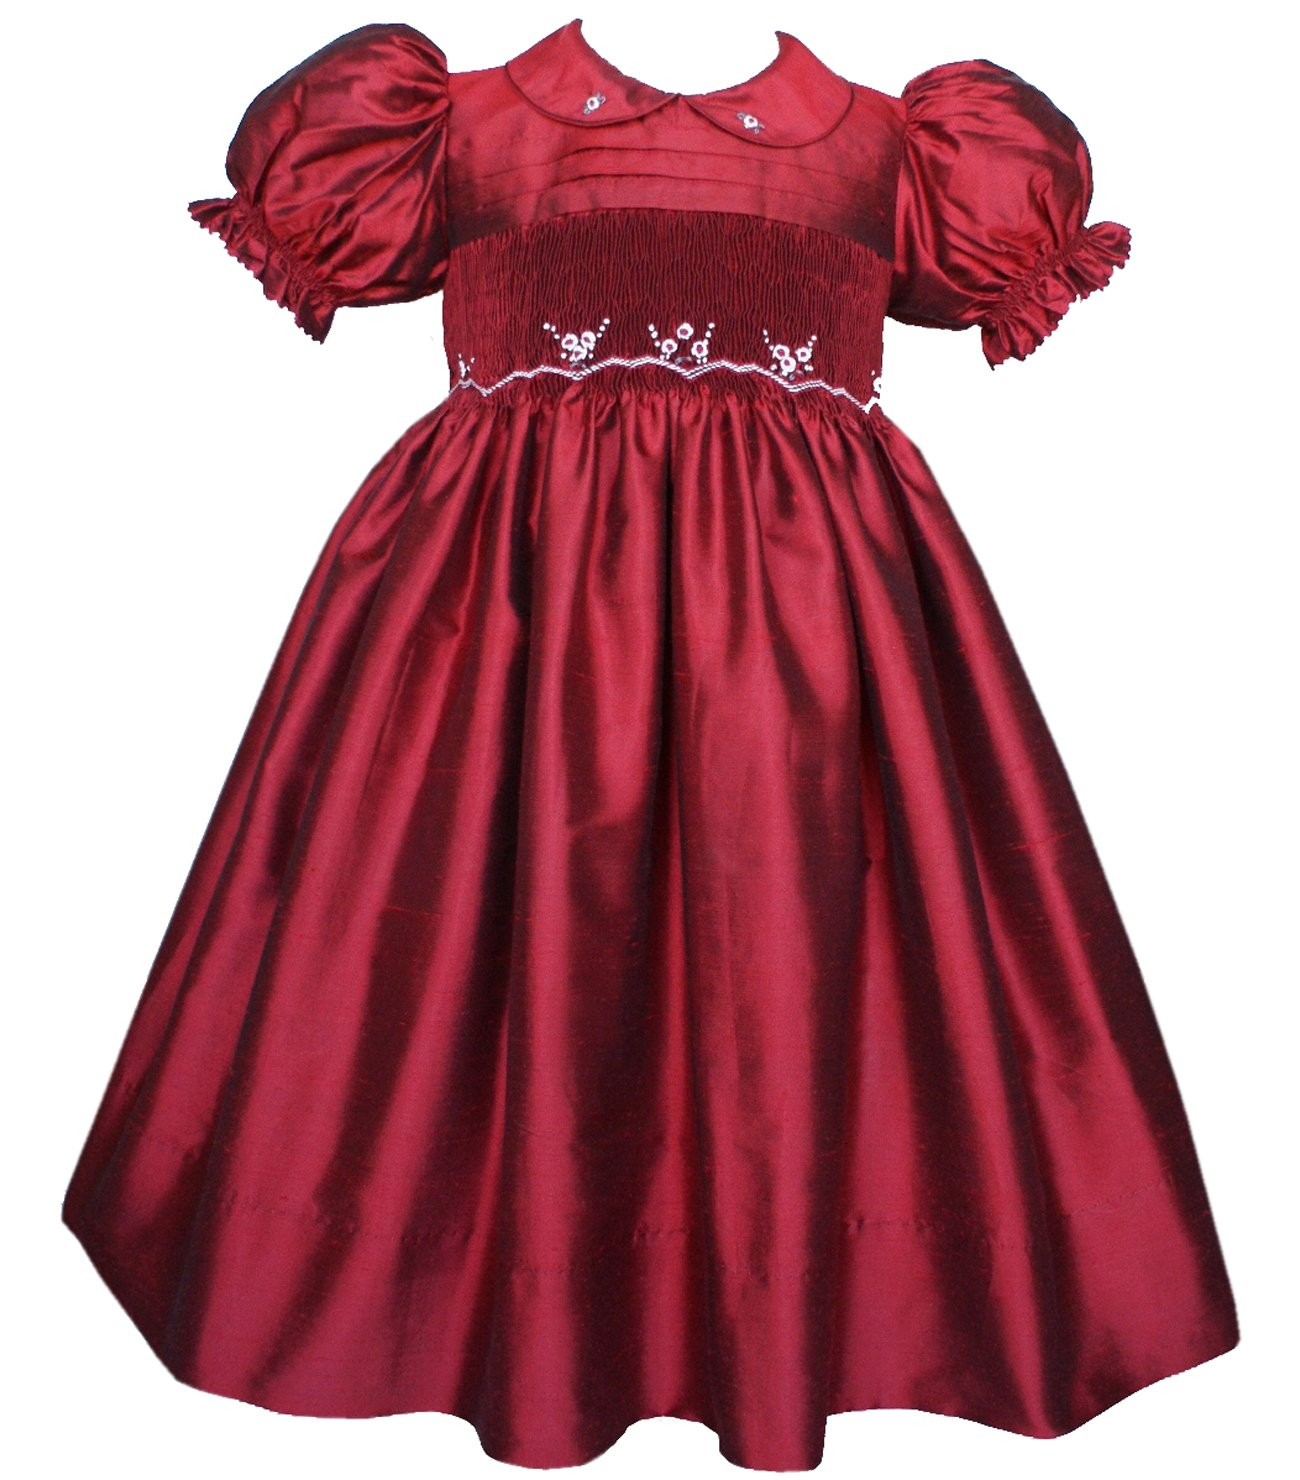 Carouselwear Ruby Stunning Silk Flower Party Girls Dresses for the Holidays